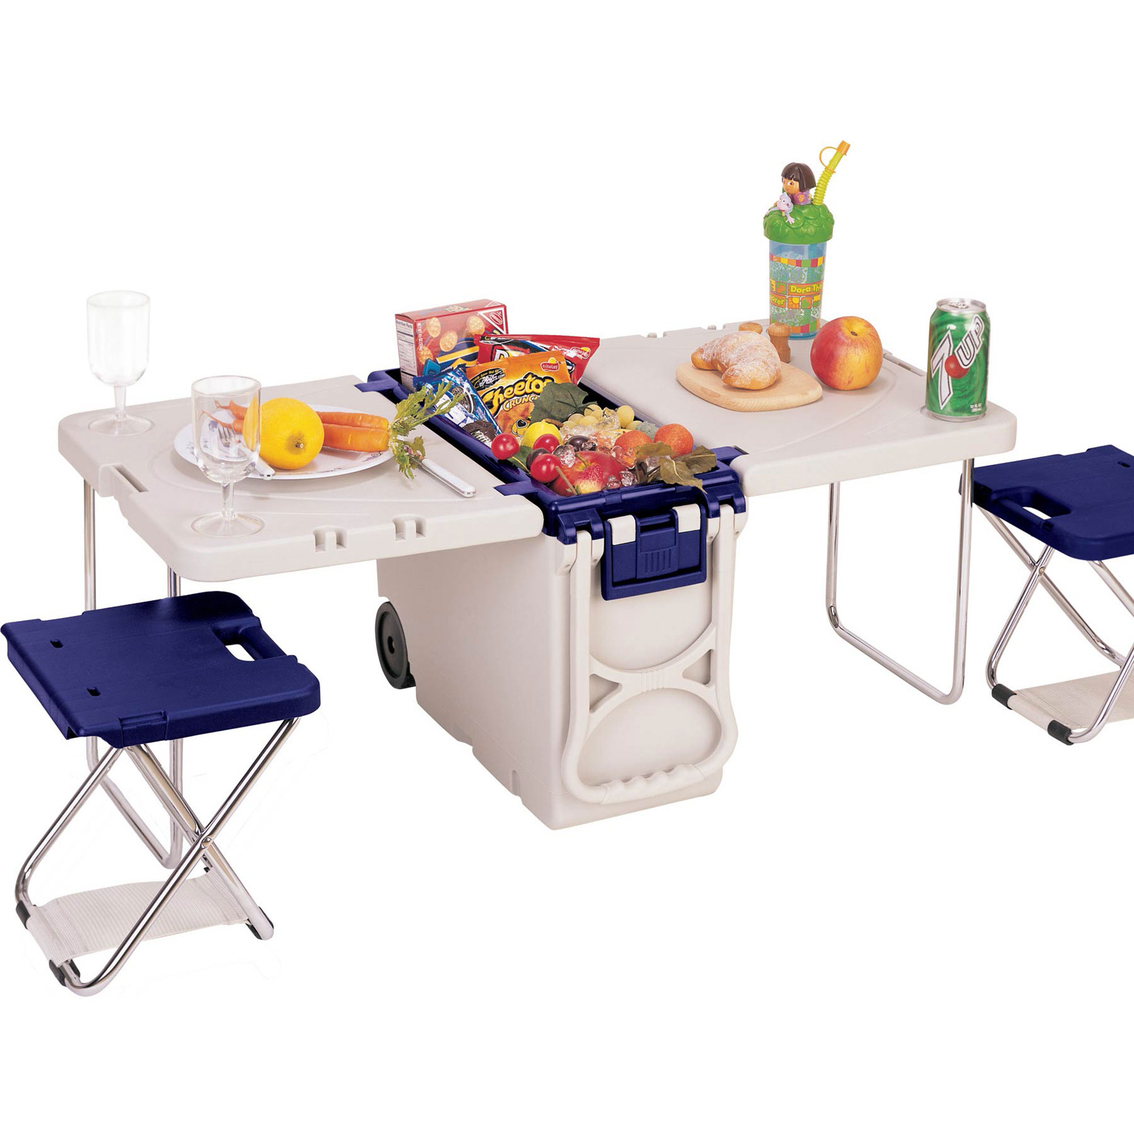 Food Chair Travelers Club Multifunction Rolling Cooler Table With 2